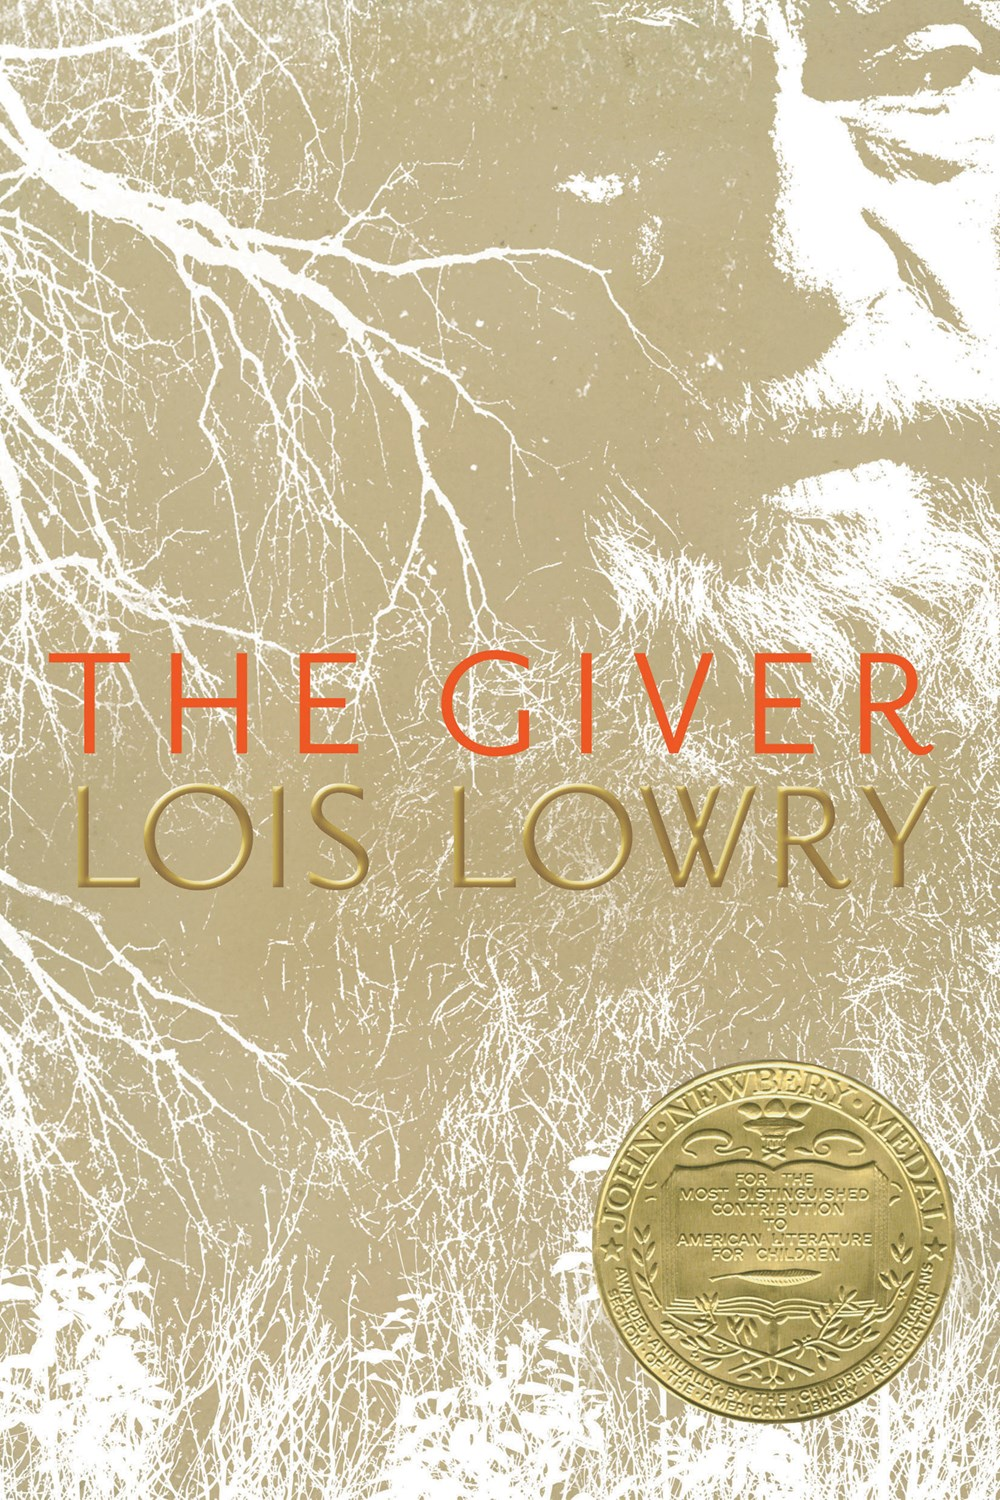 a view on the giver by lois lowry This book trailer for the giver by lois lowry should be considered a found video and is used for educational purposes only videos used include: - davidhjl.